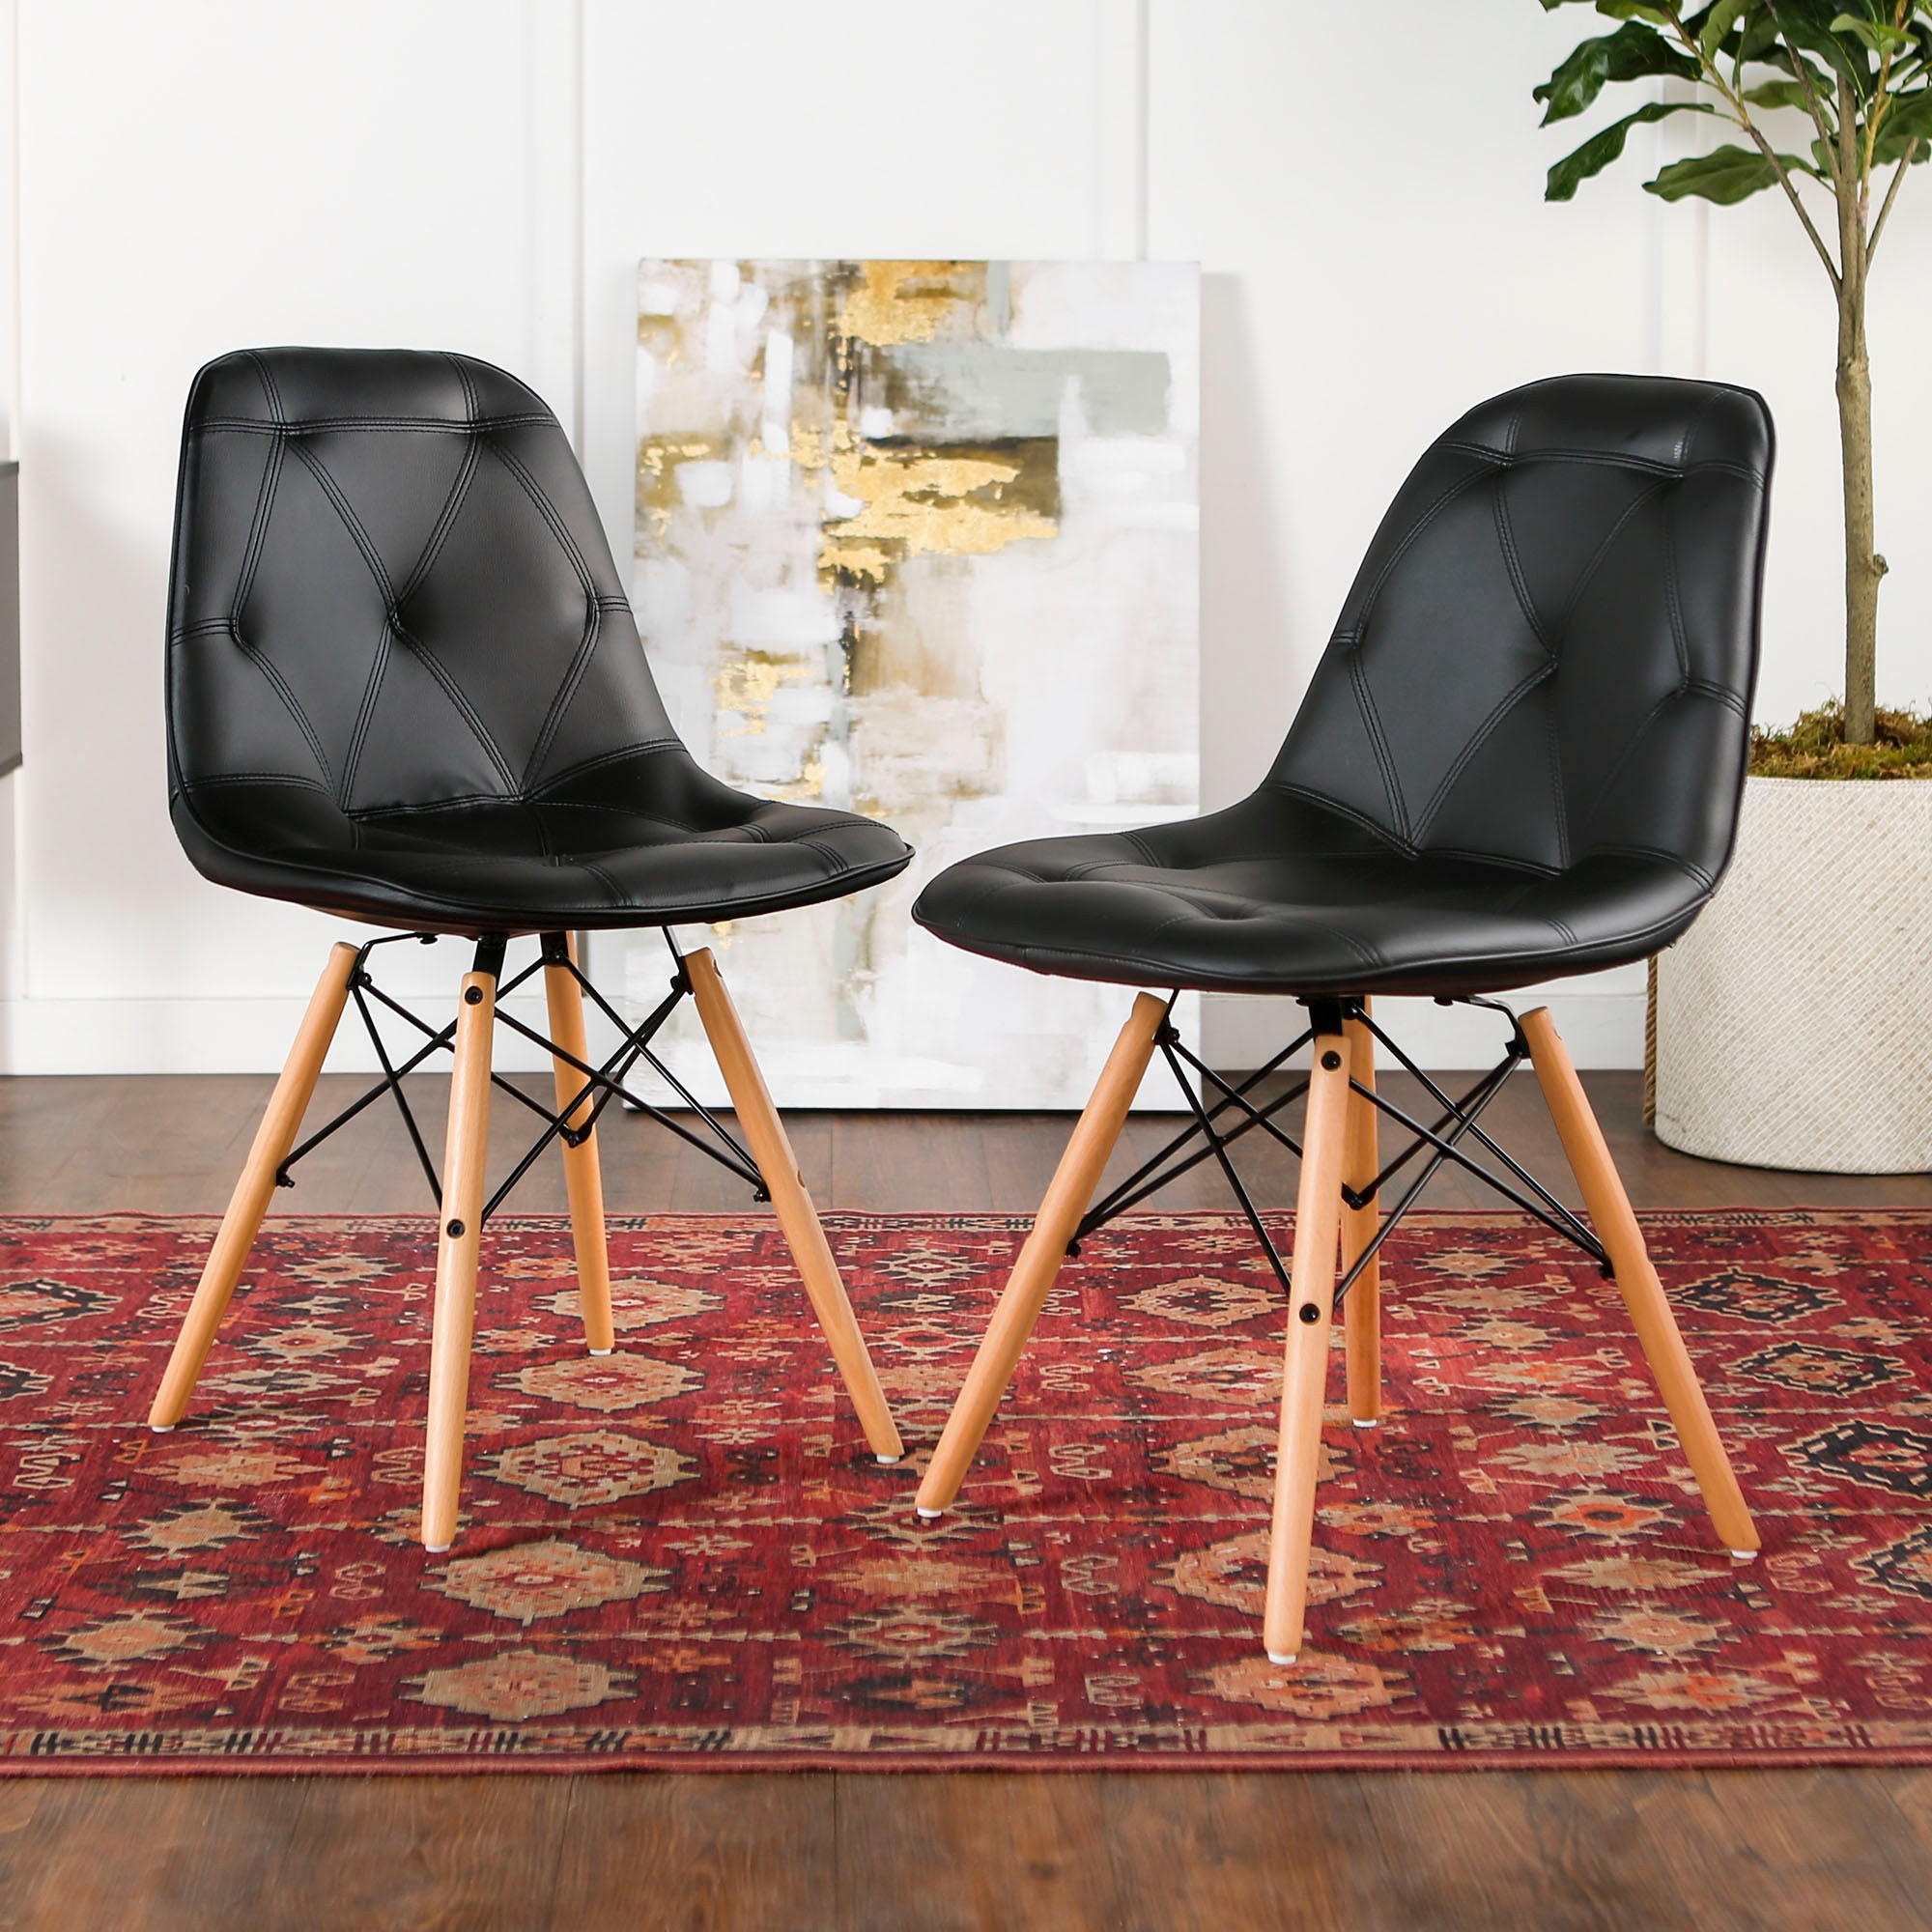 mid century modern kitchen chairs outdoor bbq kits upholstered faux leather eames home office dining ft myers set of 2 black wedch18pu2bl